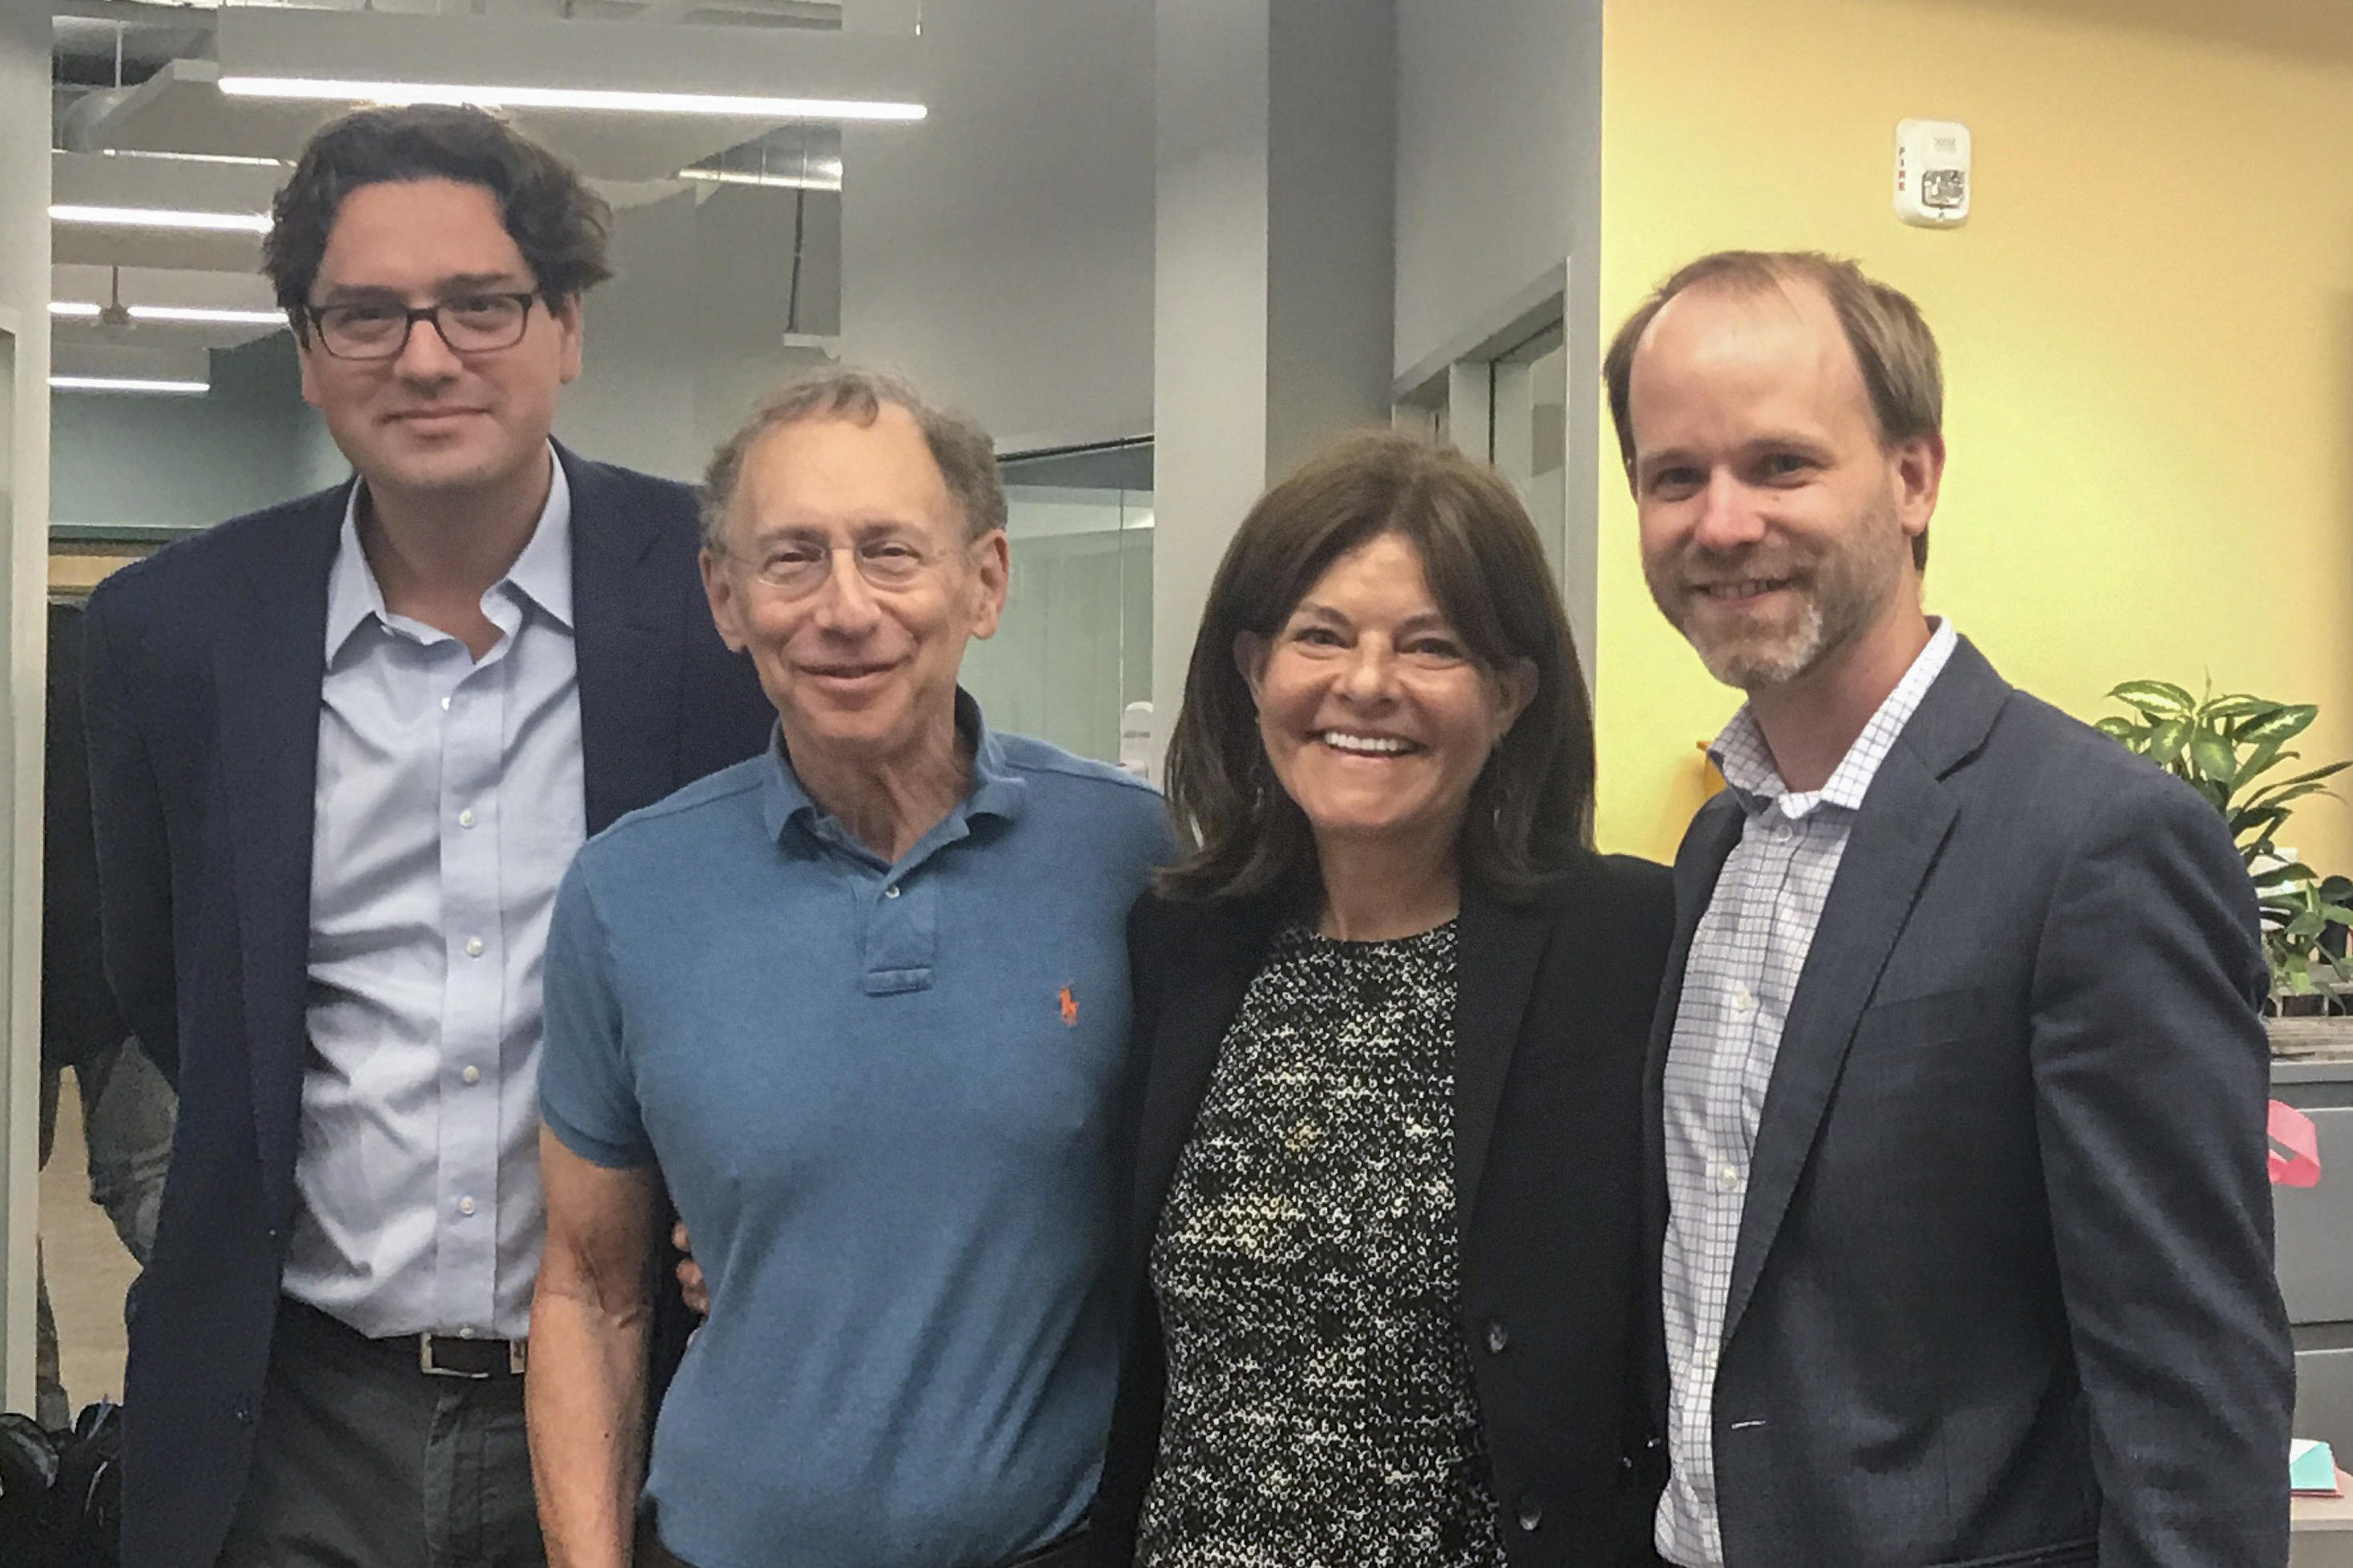 Lyndra's Co-Founders: Giovanni Traverso, Ph.D., Robert Langer, Sc.D., Amy Schulman and Andrew Bellinger, M.D., Ph.D. (Lyndra Therapeutics)